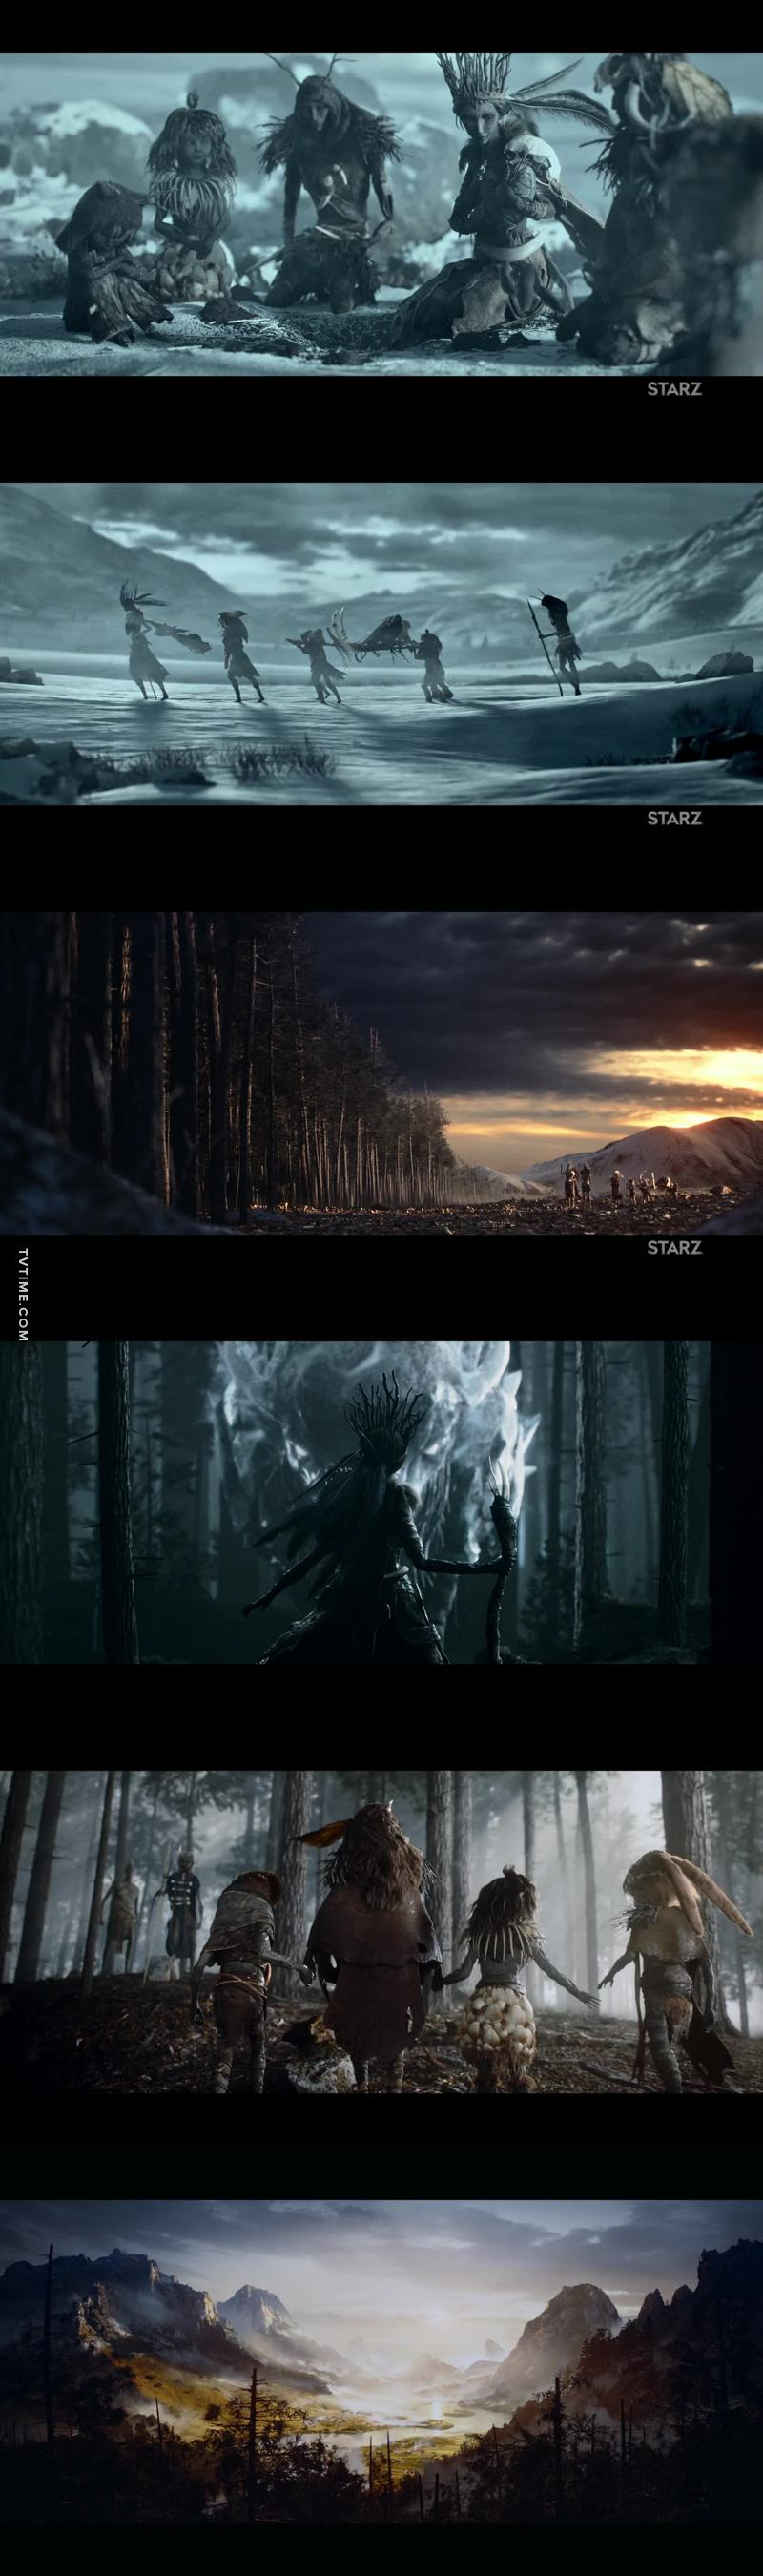 This opening scene was magnificent.